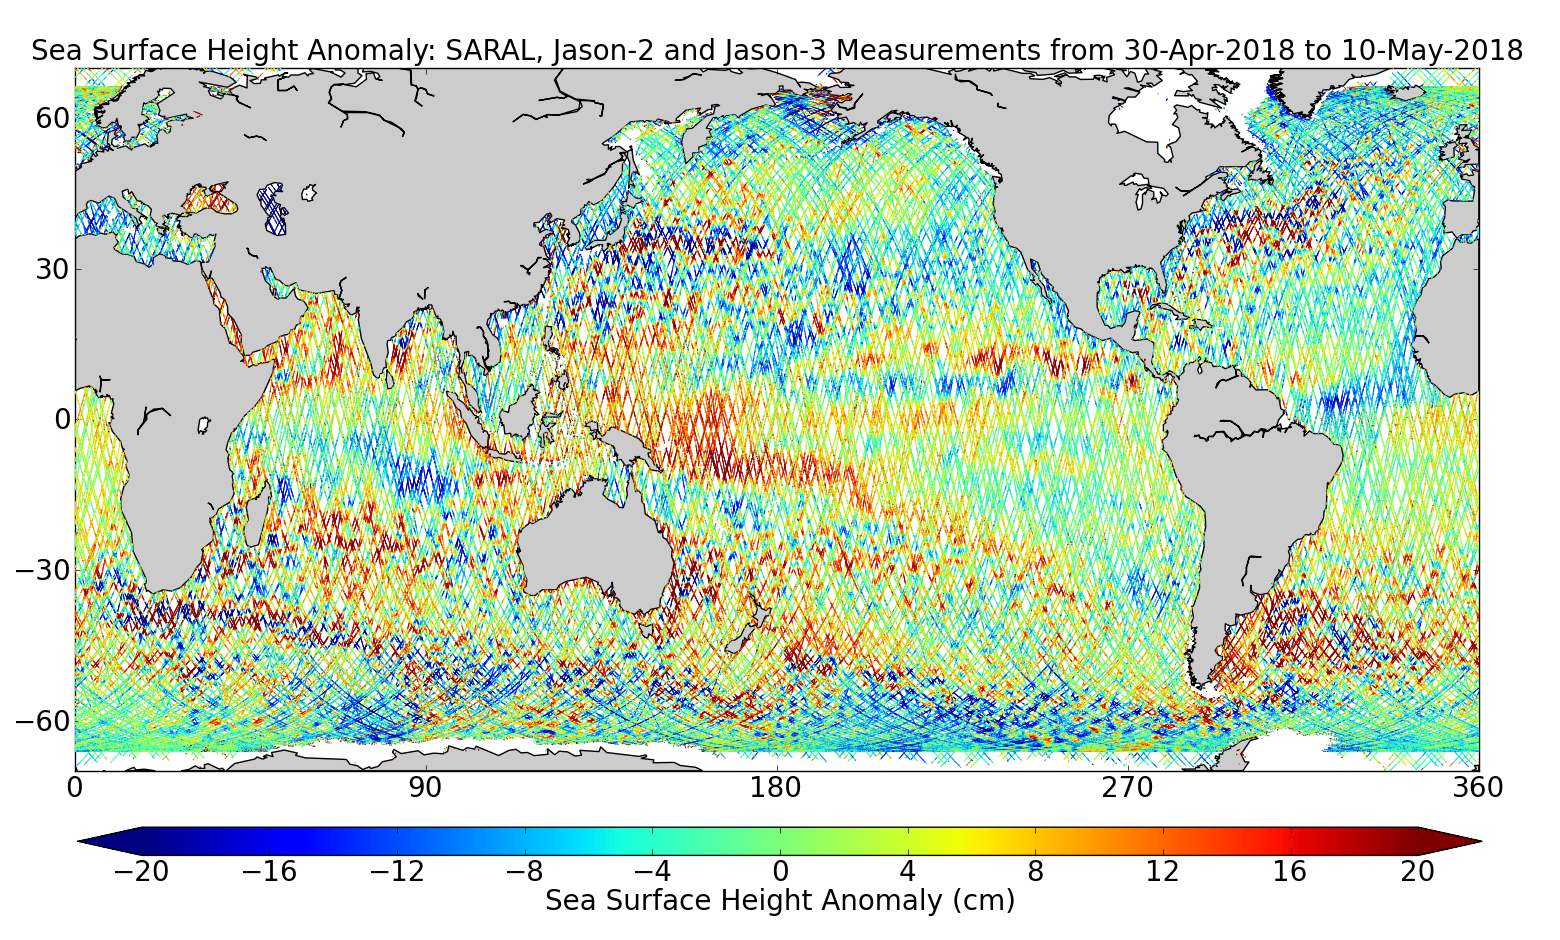 Sea Surface Height Anomaly: SARAL, Jason-2 and Jason-3 Measurements from 30-Apr-2018 to 10-May-2018